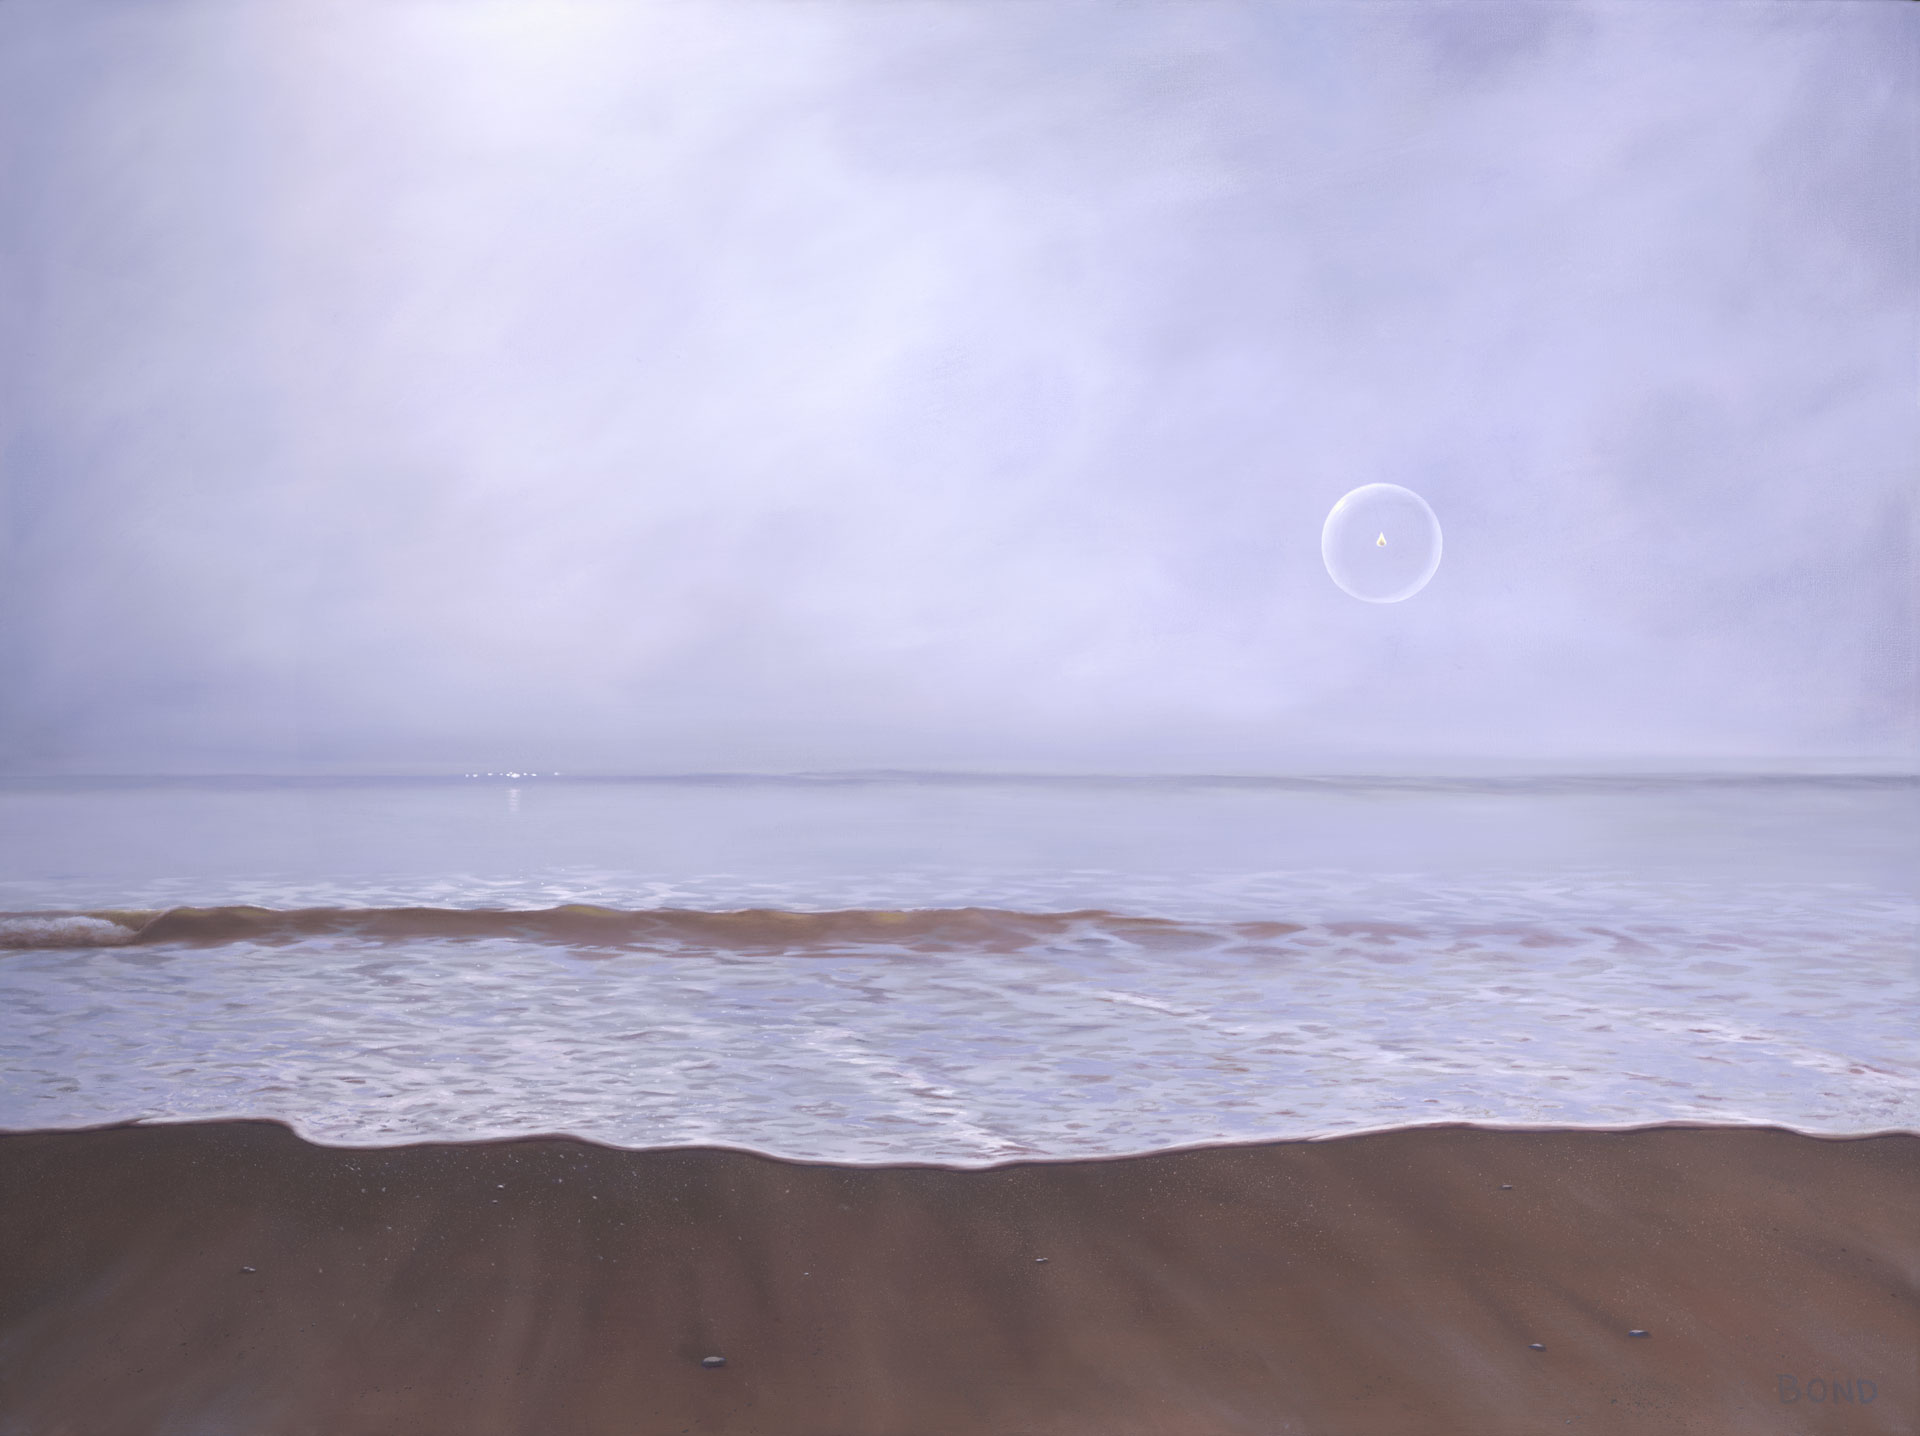 Dreaming Of Life On Another Shore, painting of a shoreline with a single flame floating away in a bubble, painting about death, art about hospice, art about life after death, afterlife painting, light, flame, trompe l'oeil, soulful uplifting inspirational art, soul stirring illusion art, romantic art,  surrealism, surreal art, dreamlike imagery, fanciful art, fantasy art, dreamscape visual, metaphysical art, spiritual painting, metaphysical painting, spiritual art, whimsical art, whimsy art, dream art, fantastic realism art, magic realism oil painting by Paul Bond